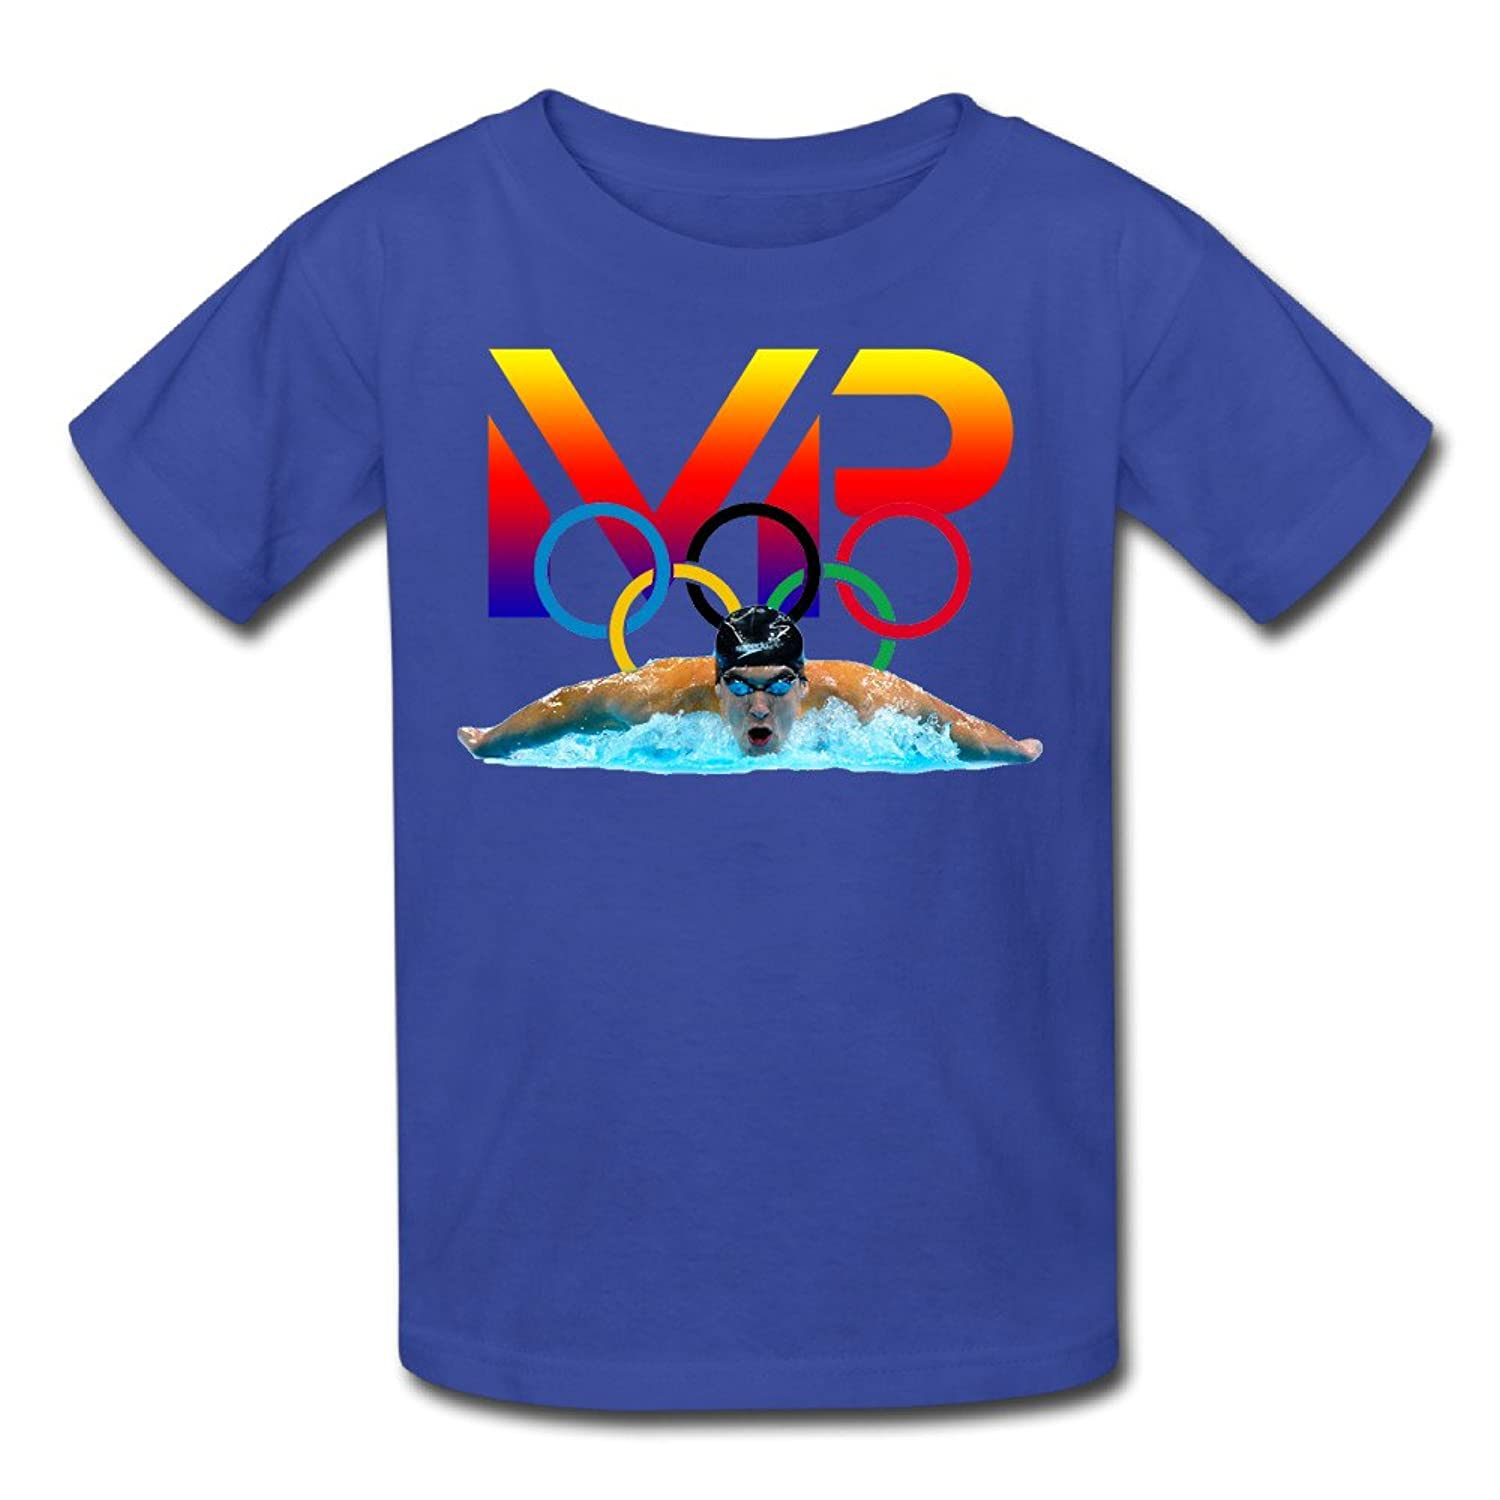 Youth Quotes Pre-cotton Michael Phelps Logo4 T-Shirt